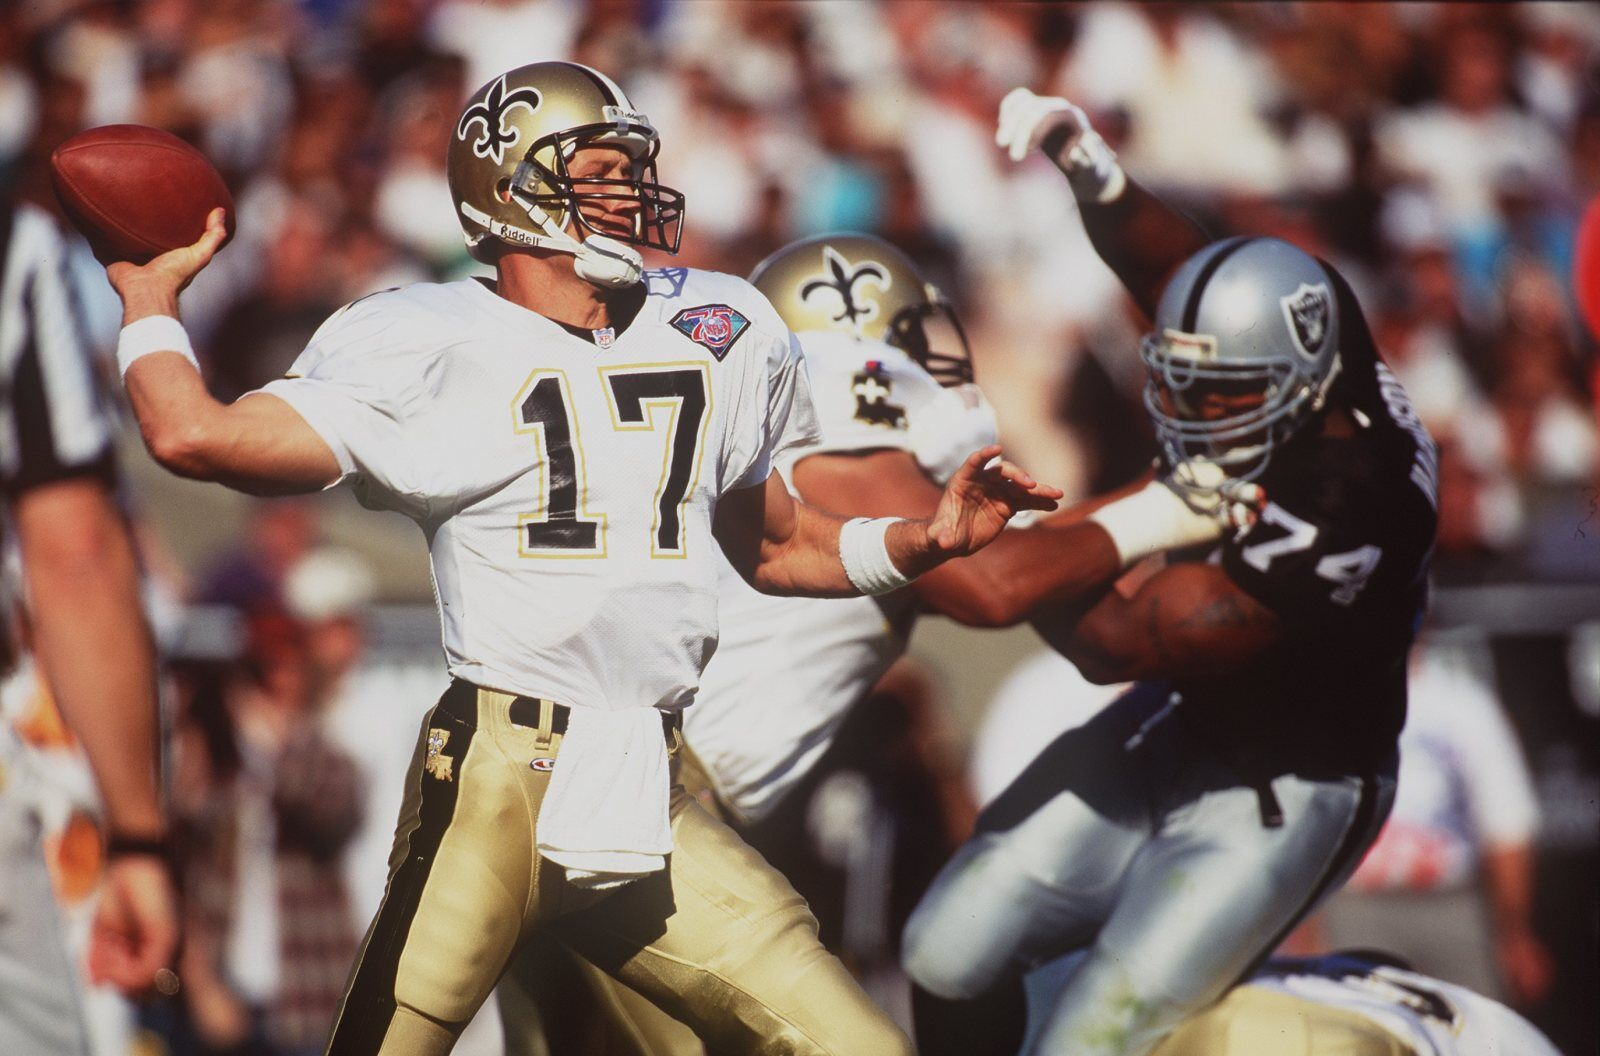 Saintstory: Jim Everett and the curse of bad timing